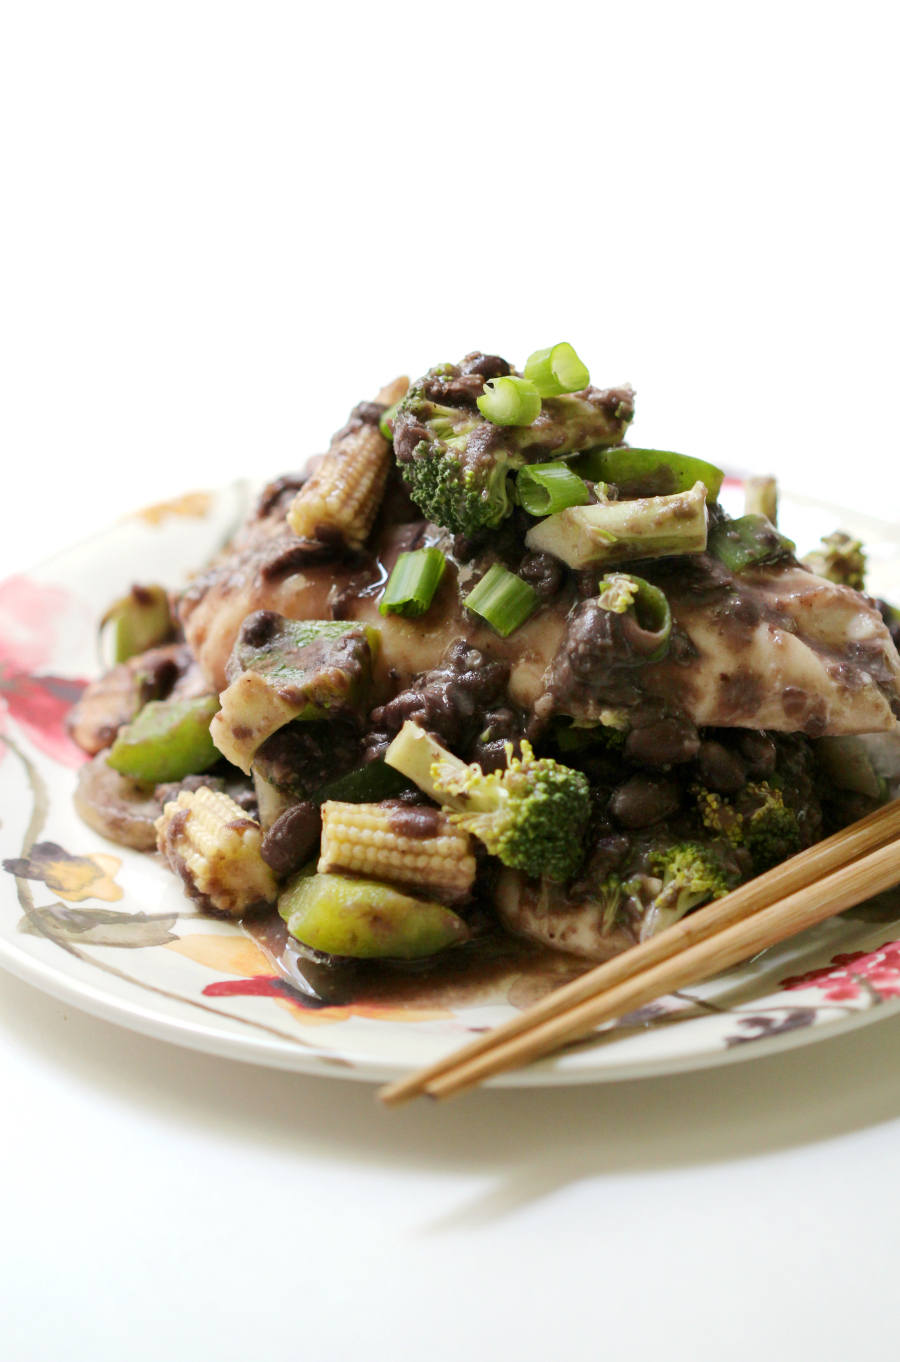 Black Bean Chicken & Vegetables (Gluten-Free, Allergy-Free) | Strength and Sunshine @RebeccaGF666 A healthy & easy recipe for Black Bean Chicken & Vegetables that's gluten-free and allergy-free. A homemade black bean sauce, Asian vegetables, and chicken tenders guarantee a delicious crowd-pleasing weeknight dinner!